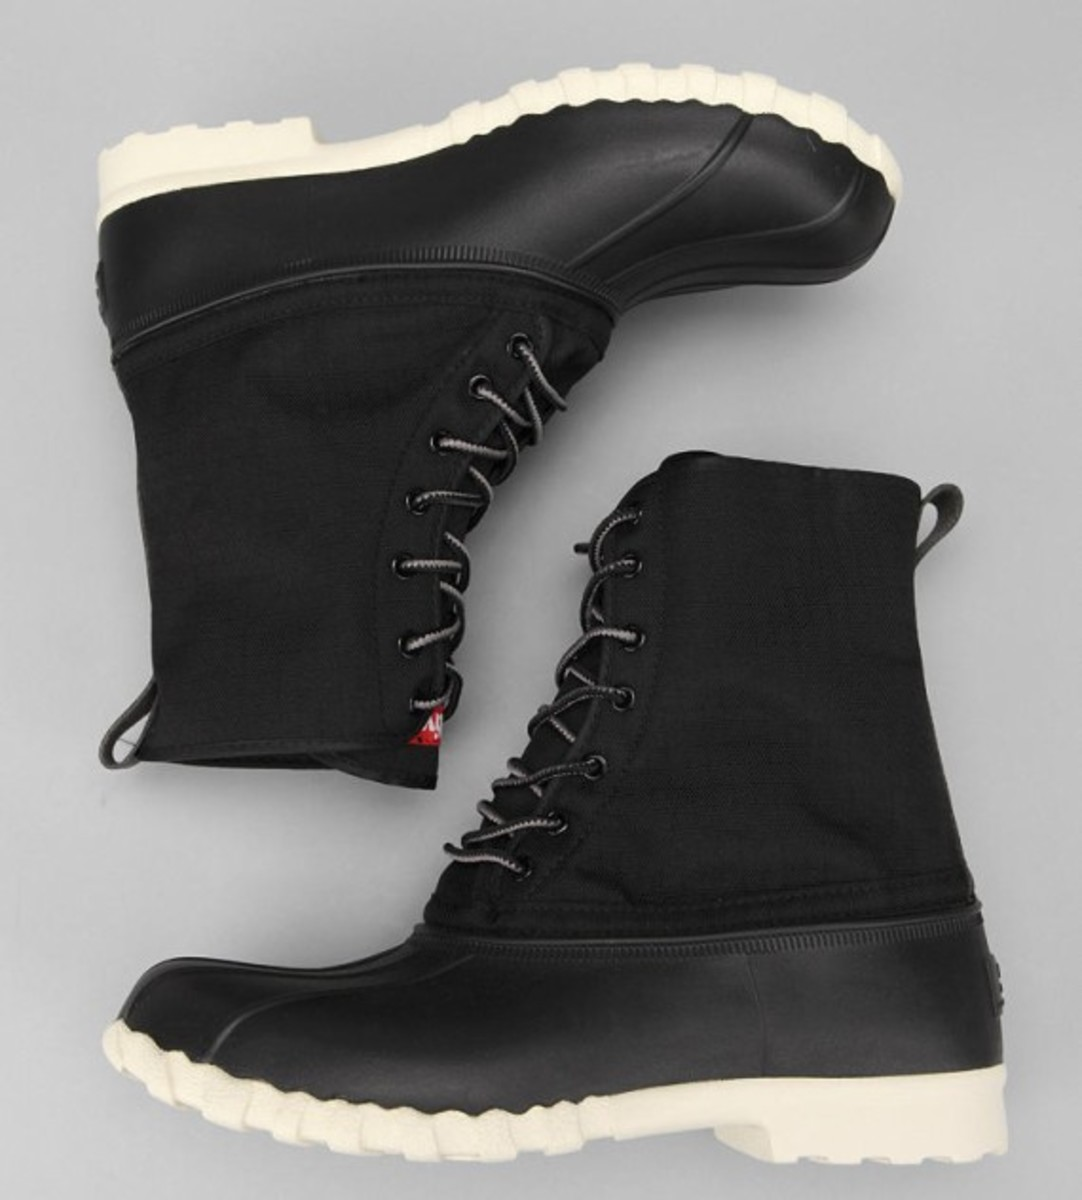 native-jimmy-duck-boots-black-01